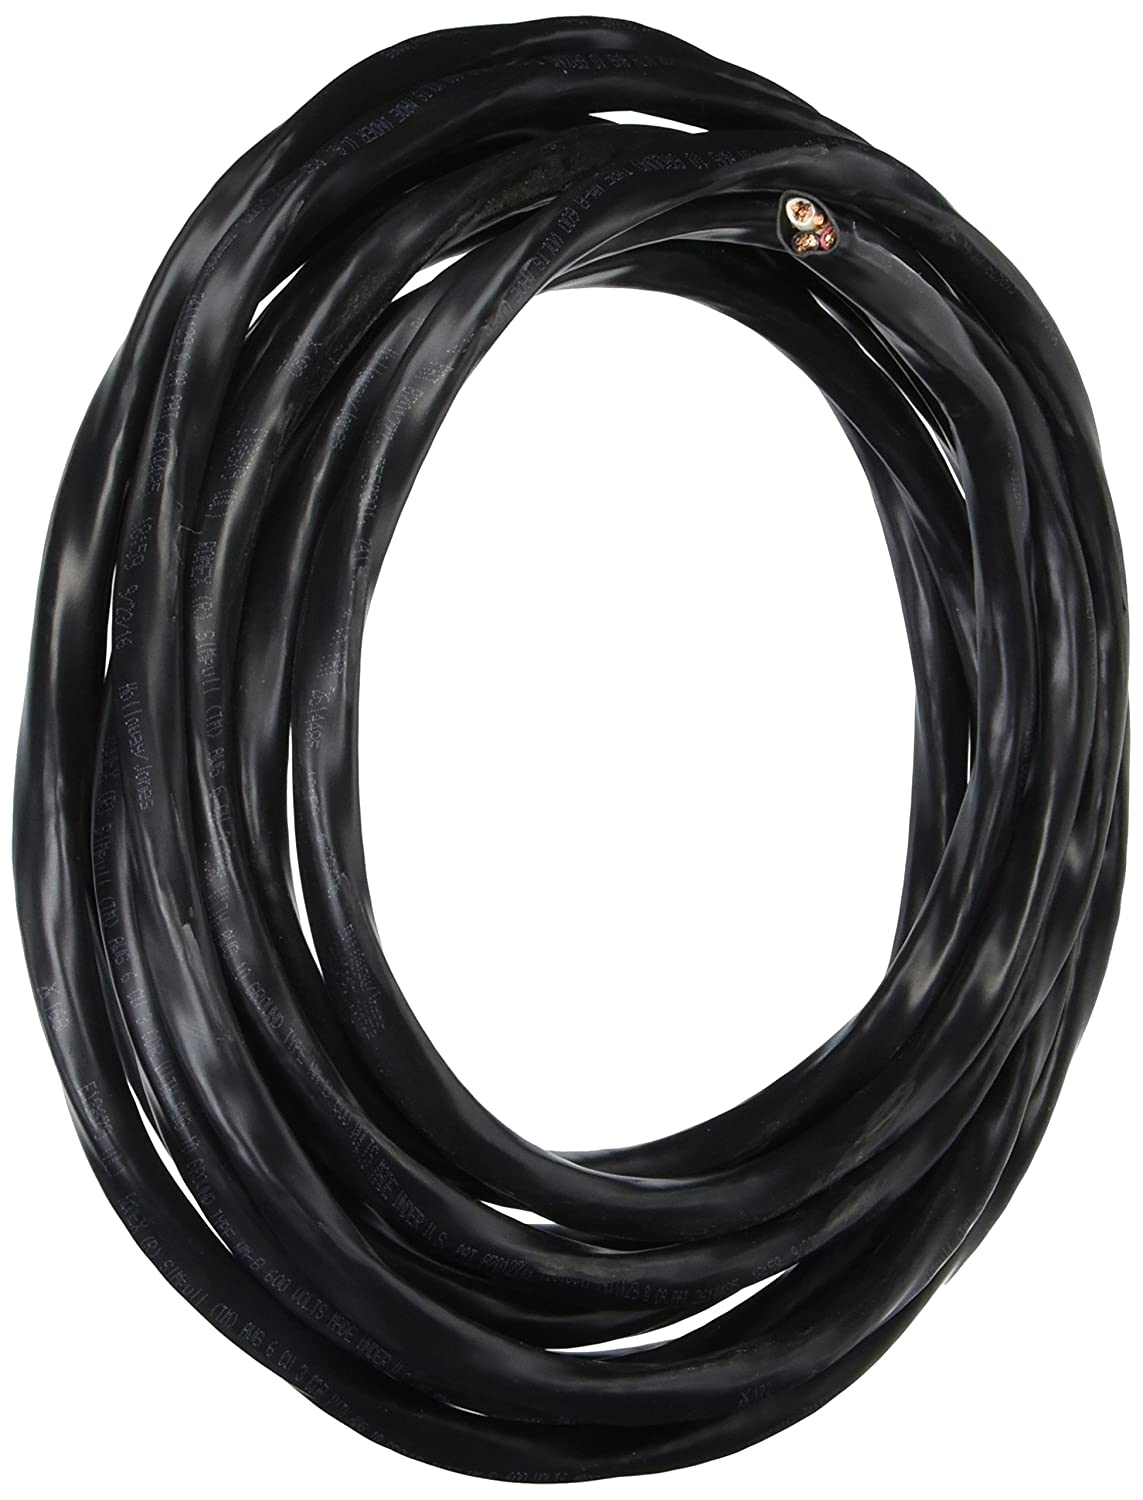 Romex 63950021 25 ft. 6 3 Black Stranded CU SIMpull NM B Wire